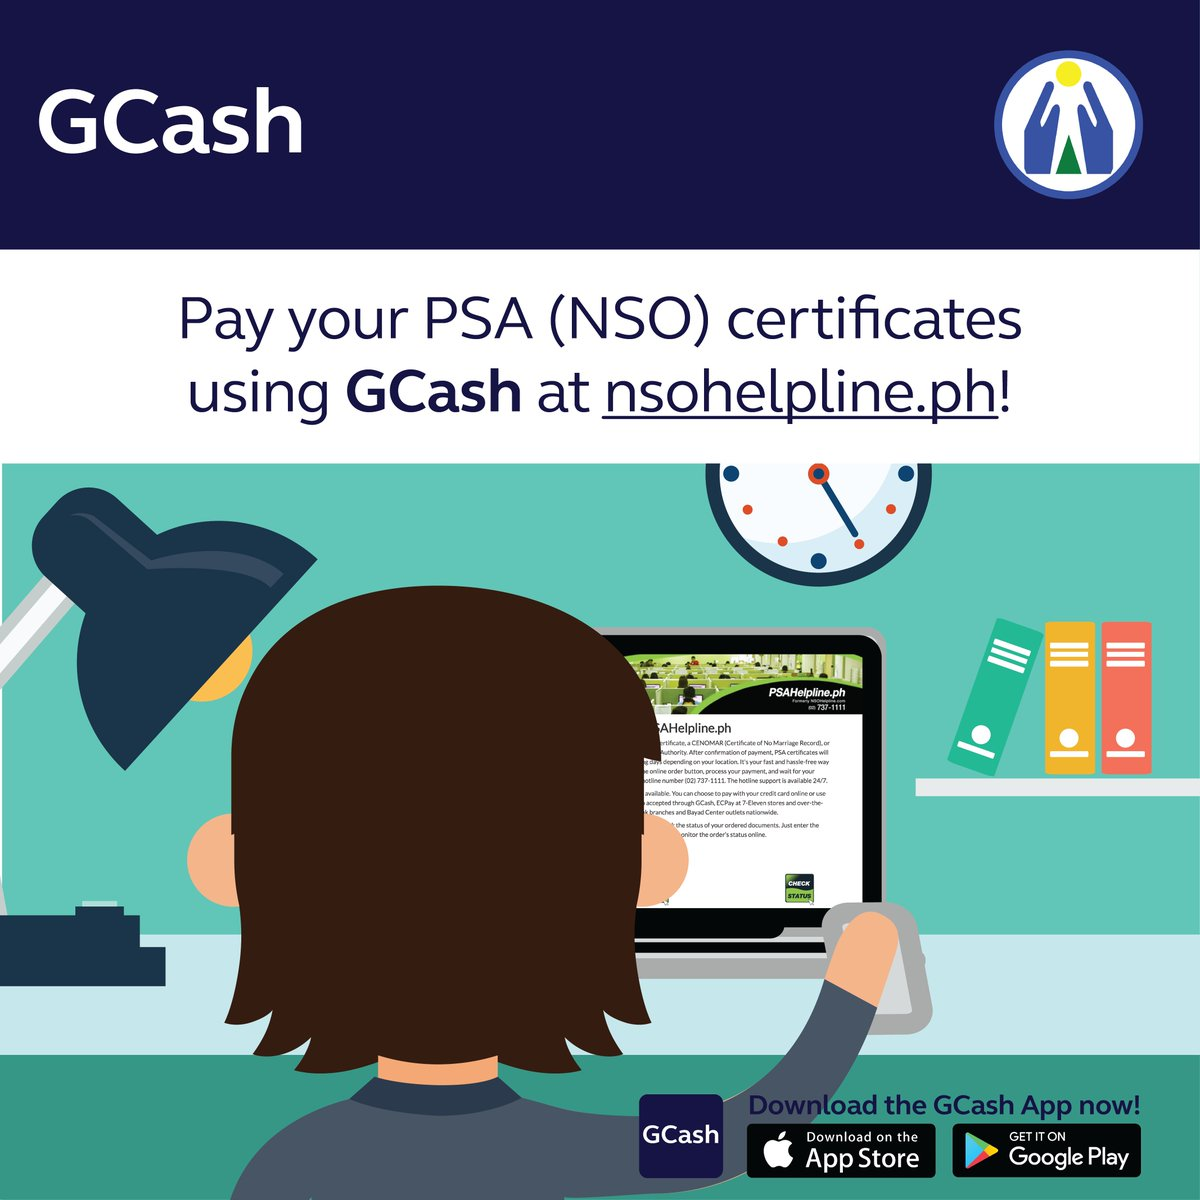 Gcash on twitter ordering your birth marriage and other gcash on twitter ordering your birth marriage and other certificates from psa nso just got easier with gcash just visit nsohelpline to pay now aiddatafo Choice Image